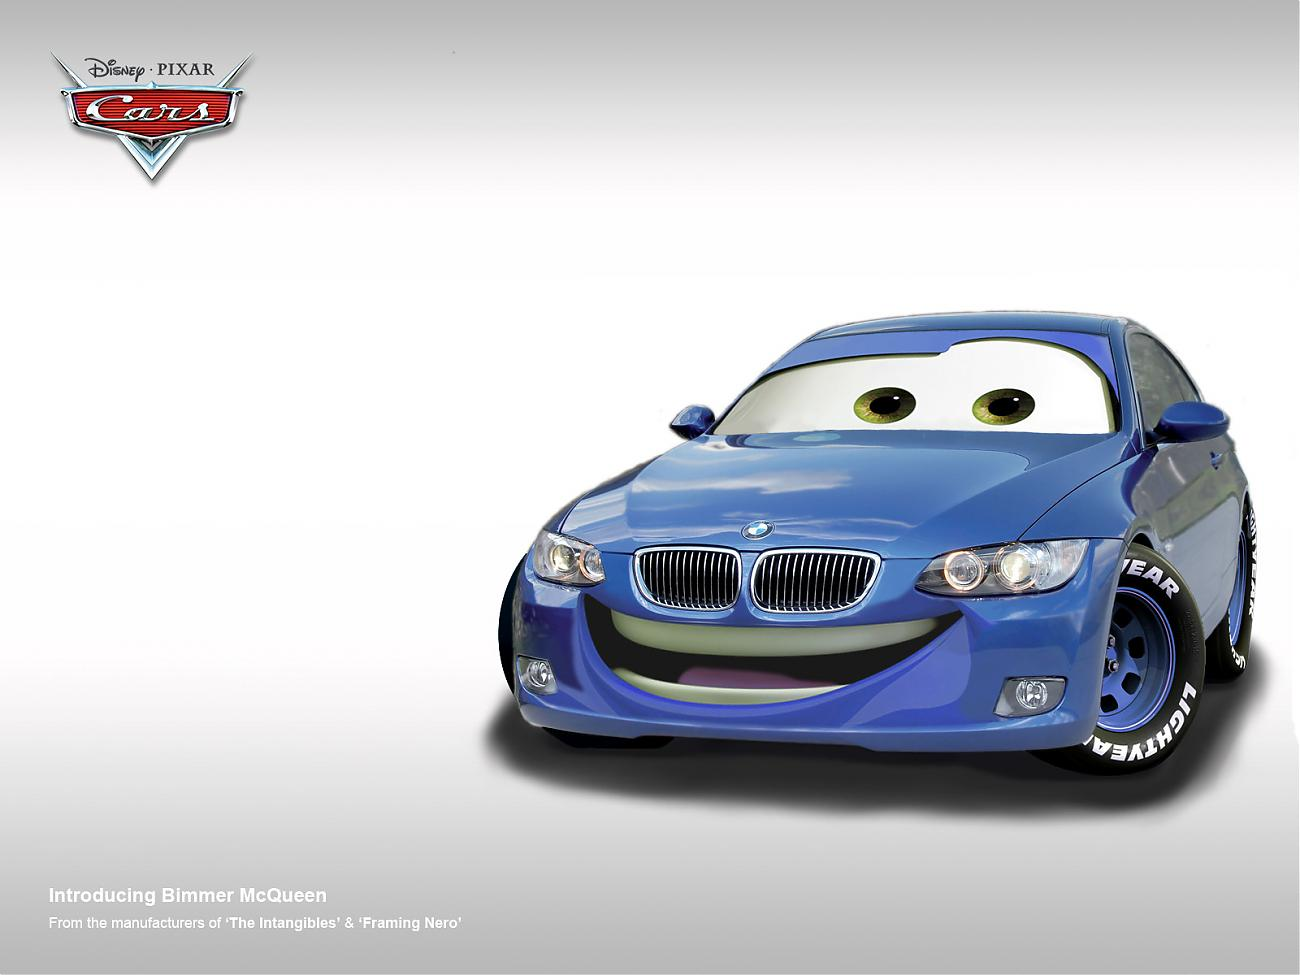 Cars 2 Cartoon Characters Names : Disney pixar presents cars page